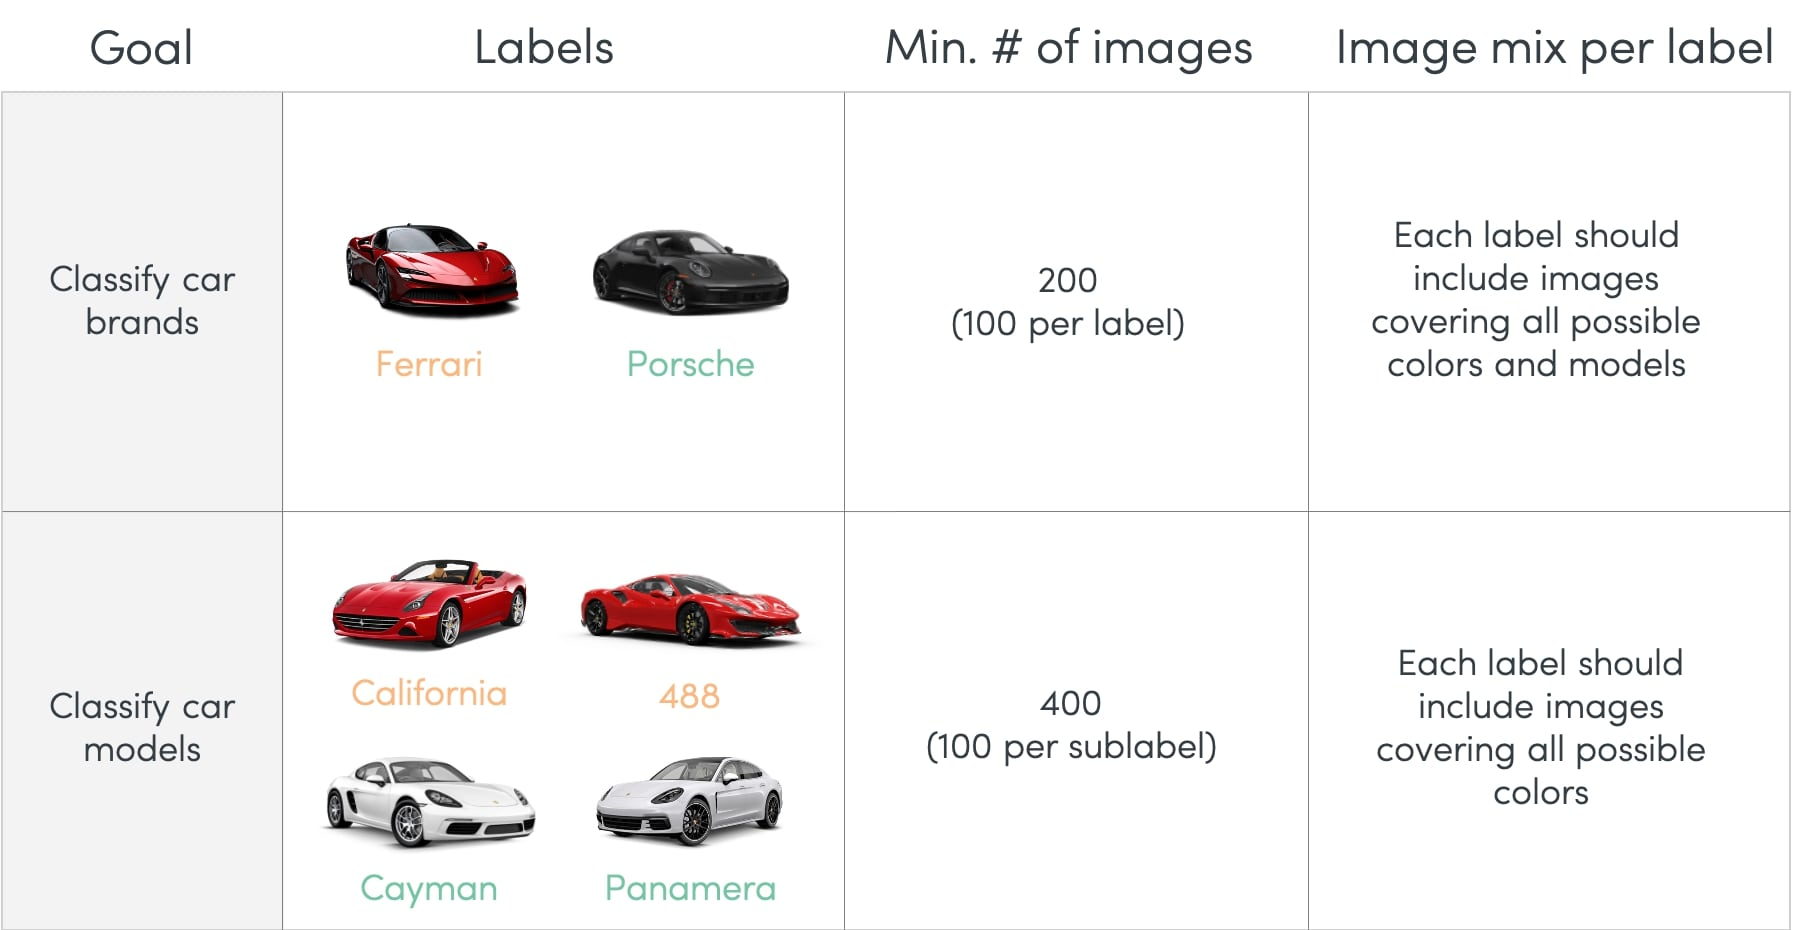 How to build a dataset for image classifier